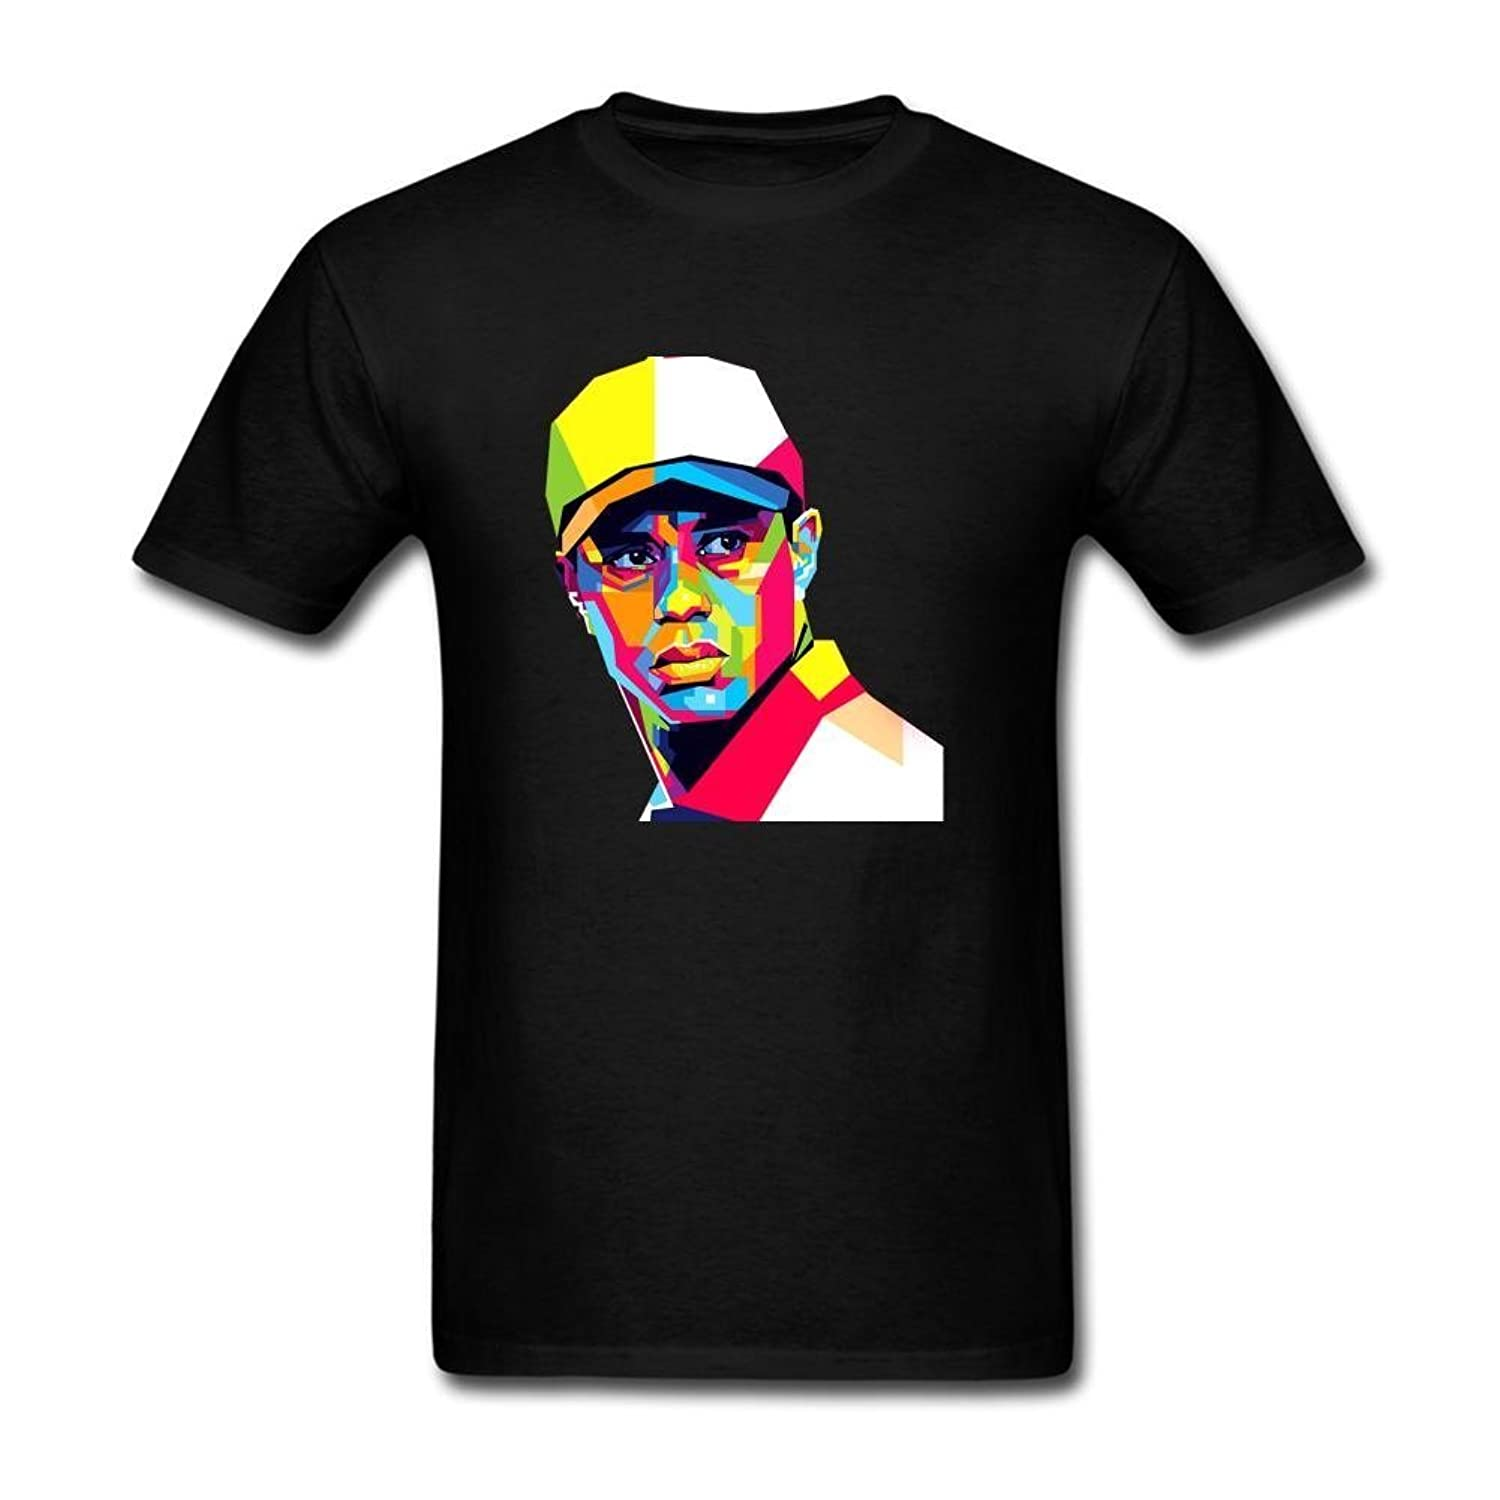 Sunrain Men S Tiger Woods Art T Shirt Ateeshirts Com